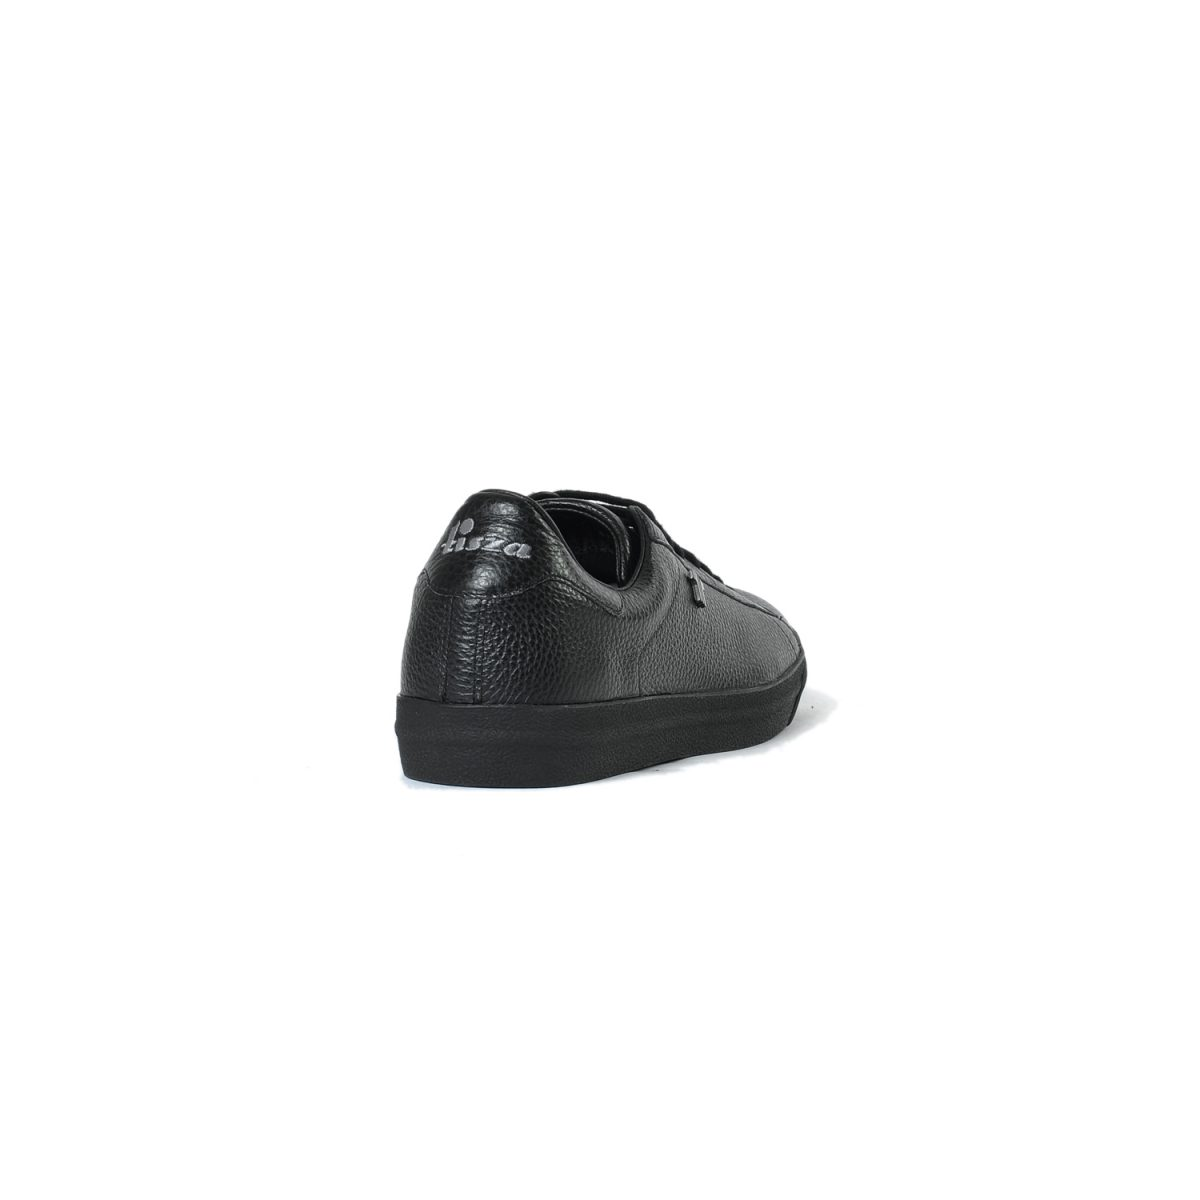 Tisza shoes - Simple - Black